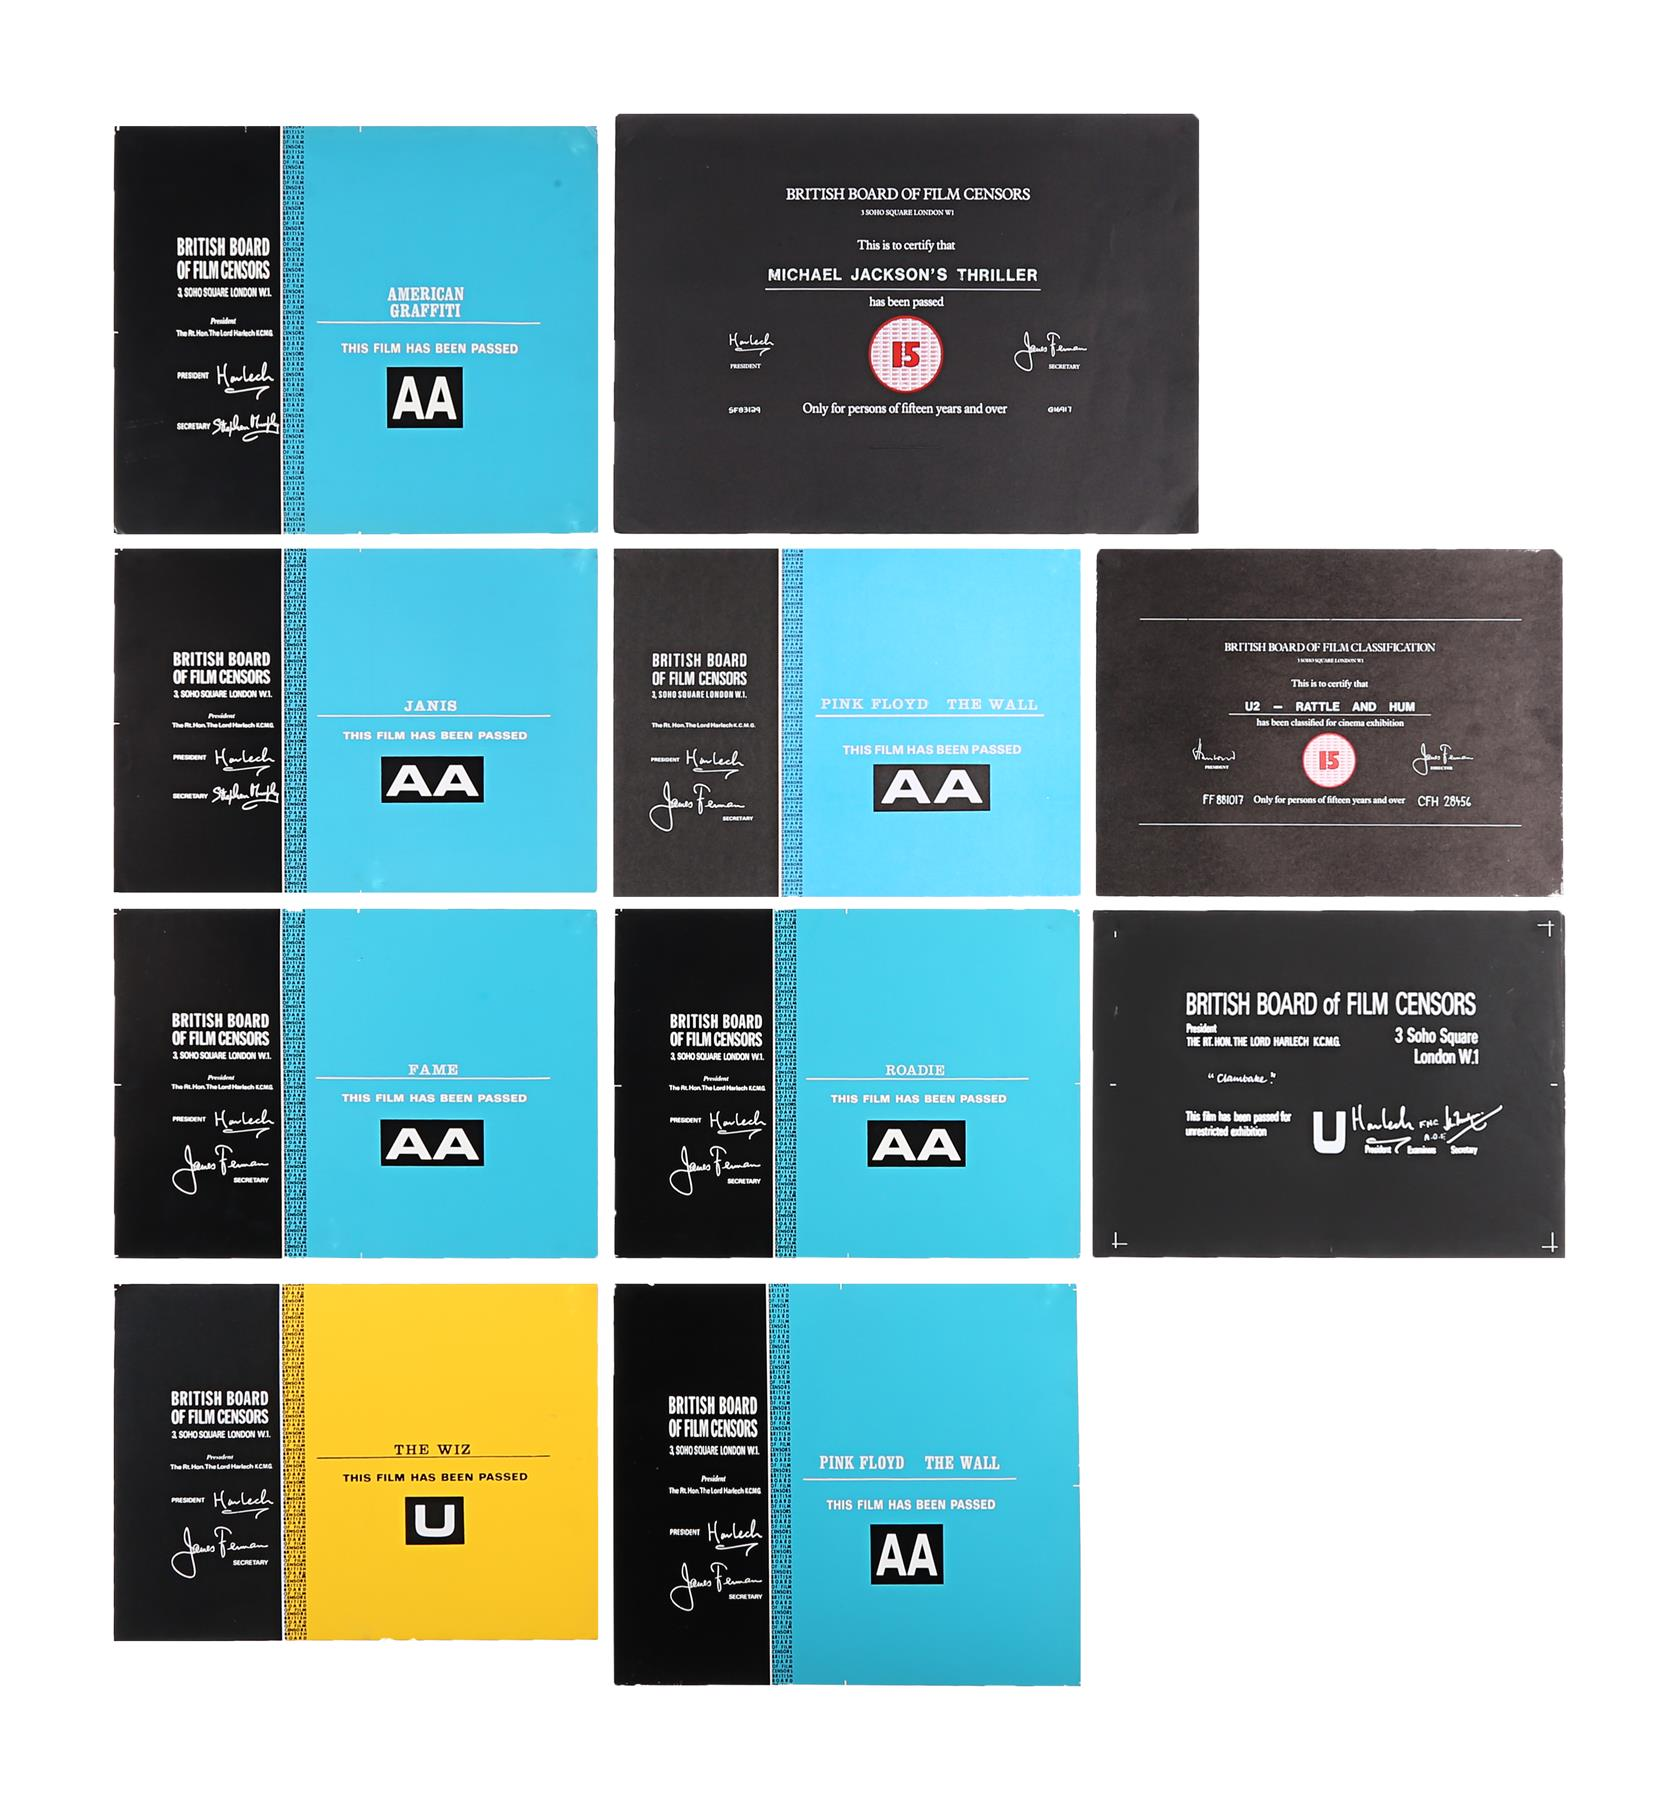 VARIOUS PRODUCTIONS - BBFC Certificates Music Related